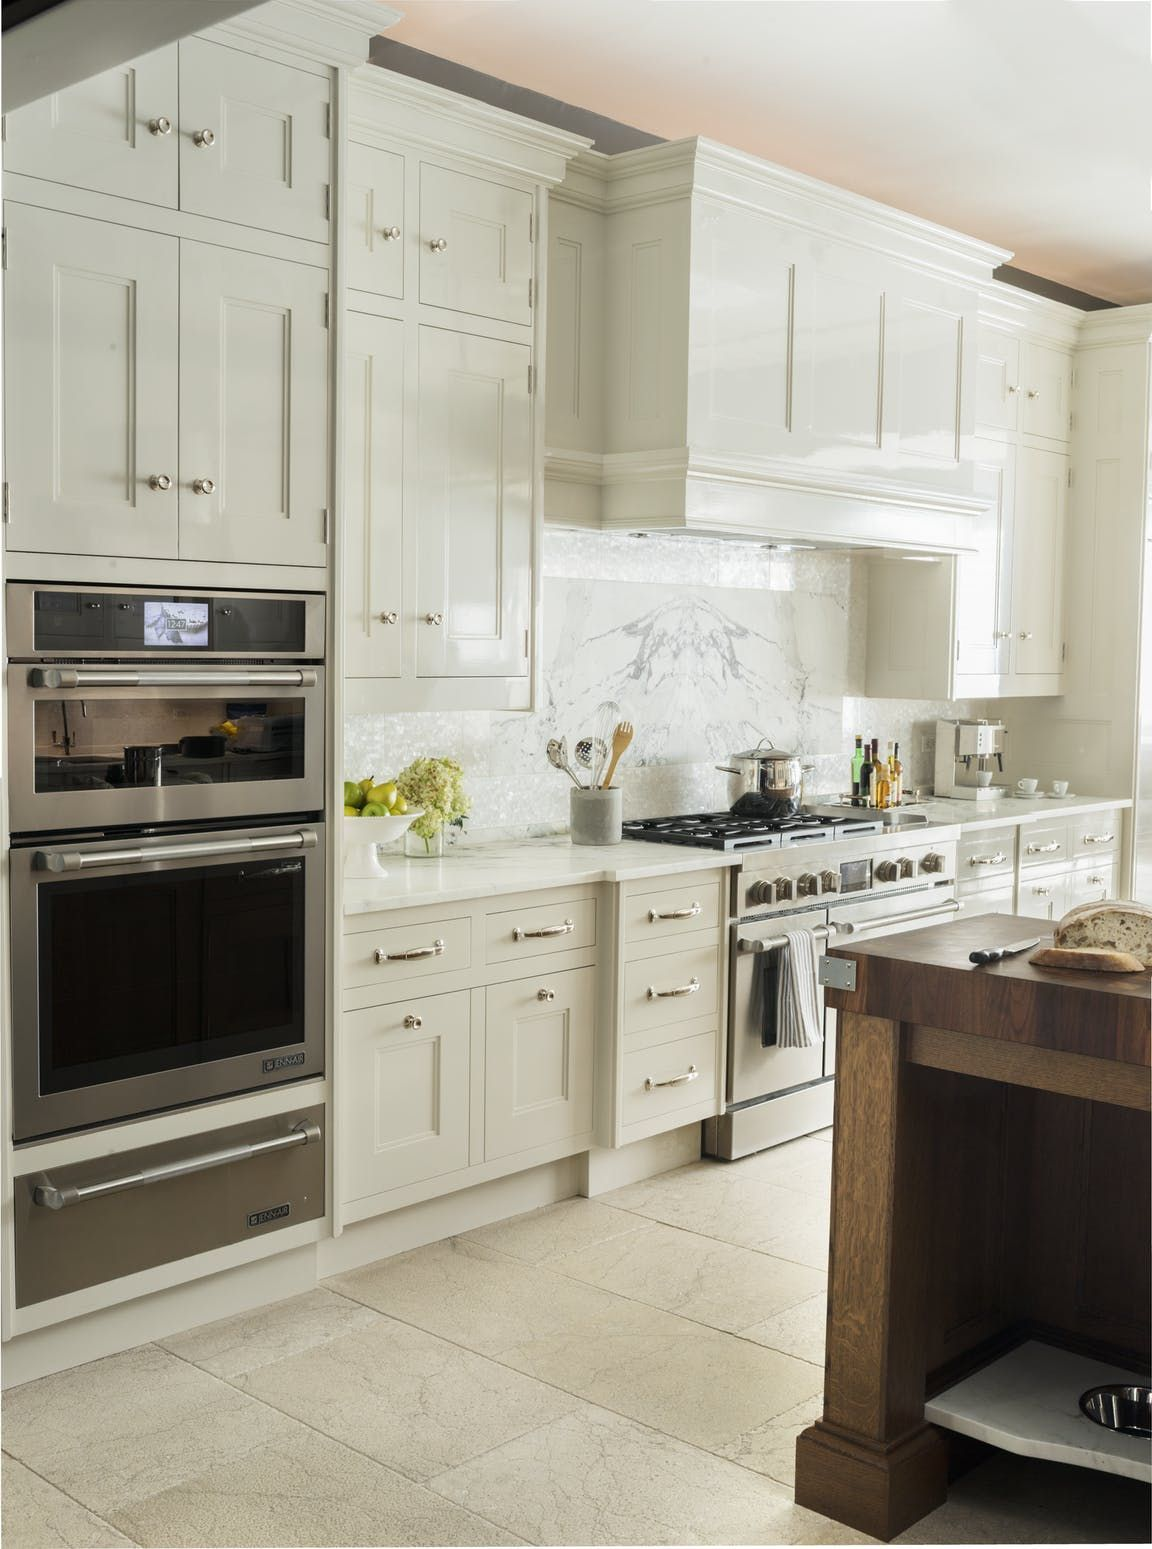 Transitional Kitchen Cabinets Polished Nickel Hardware